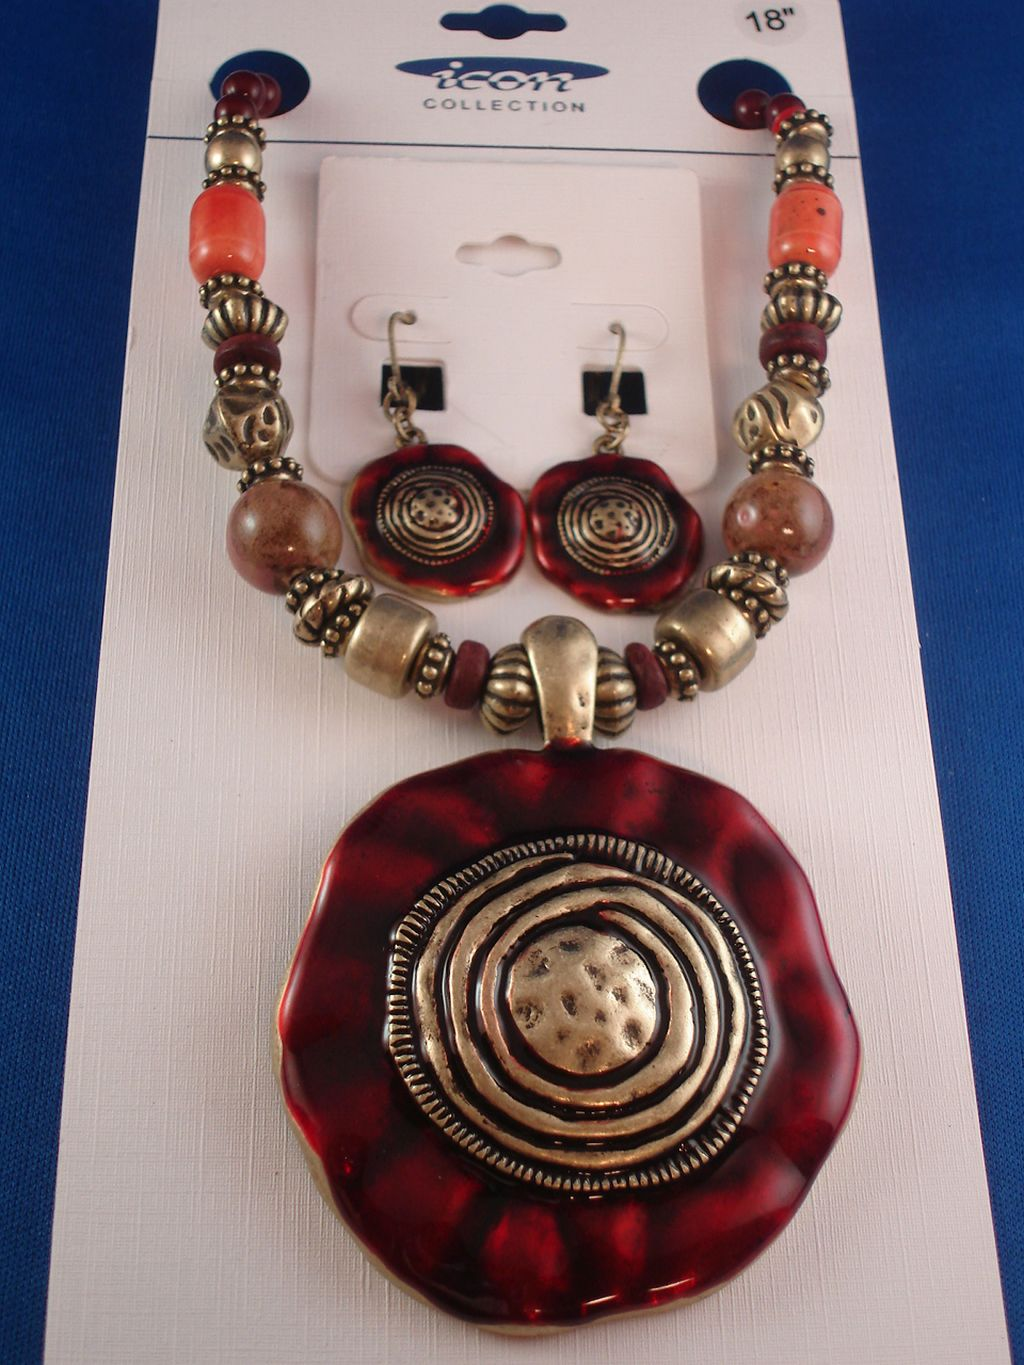 "Vintage Style Bronze Bulky Set of Necklace & Earrings, 2 1/2"" Pendant w/ Spiral Galaxy Ornament, Beads, Anti-allergic Jewelry"